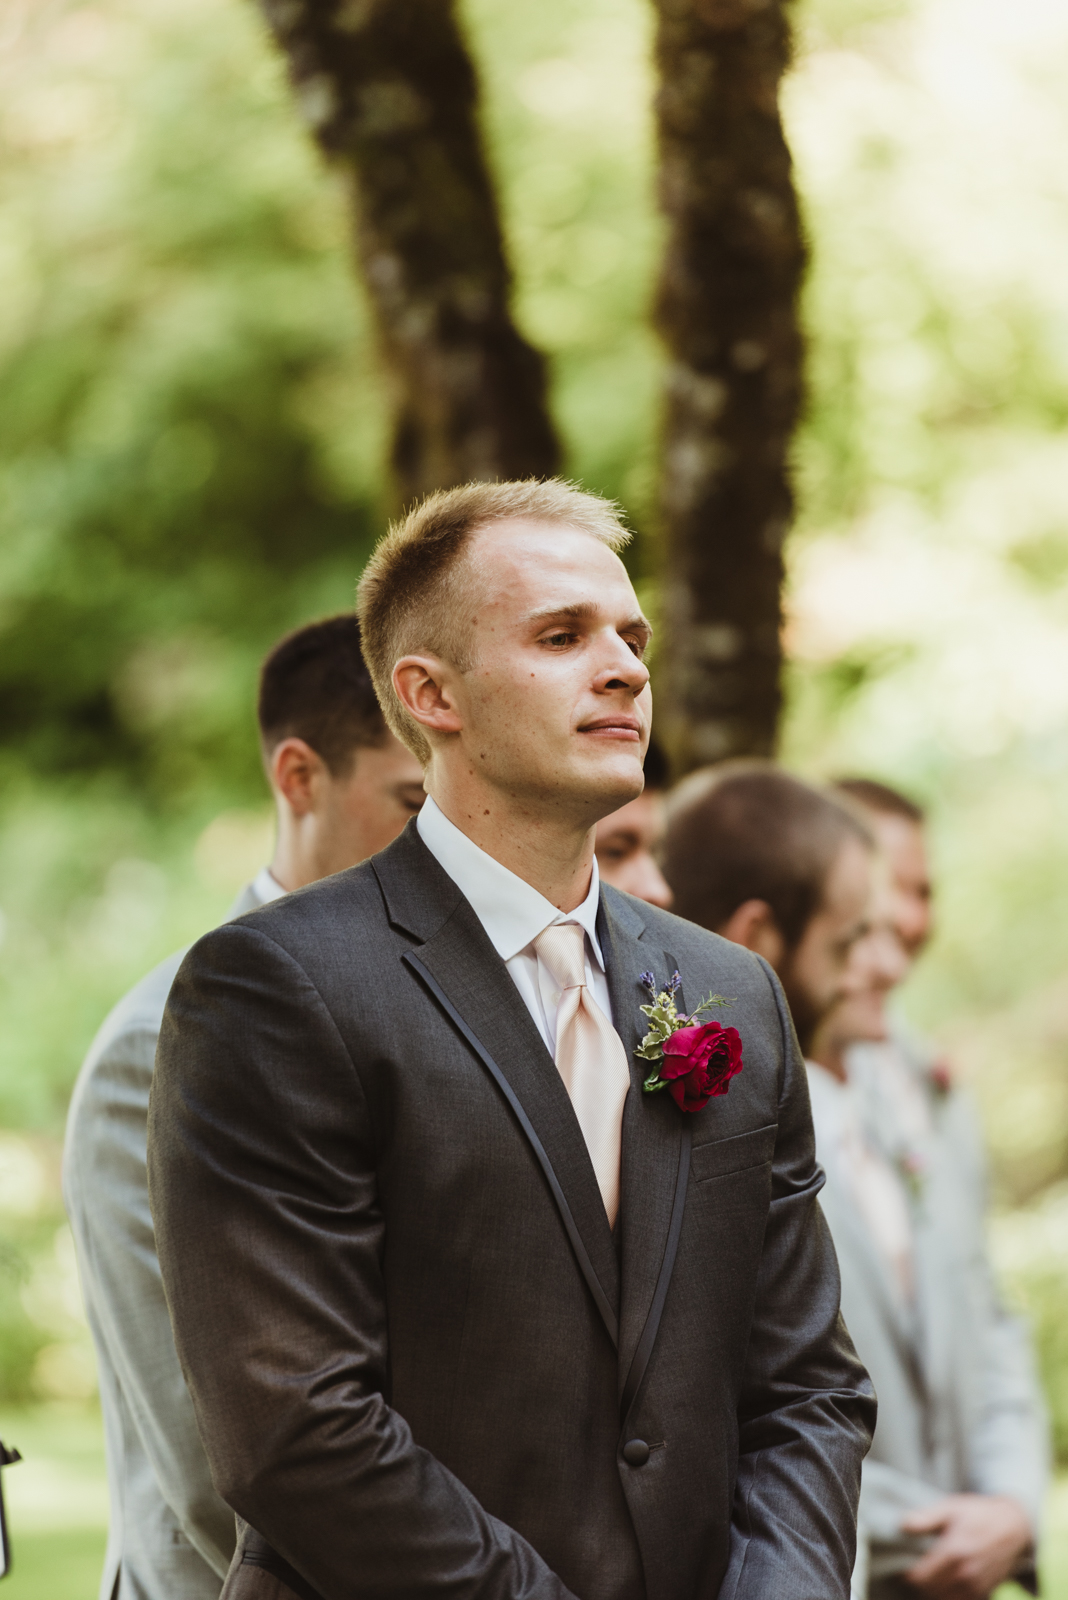 Groom waiting for his bride during ceremony